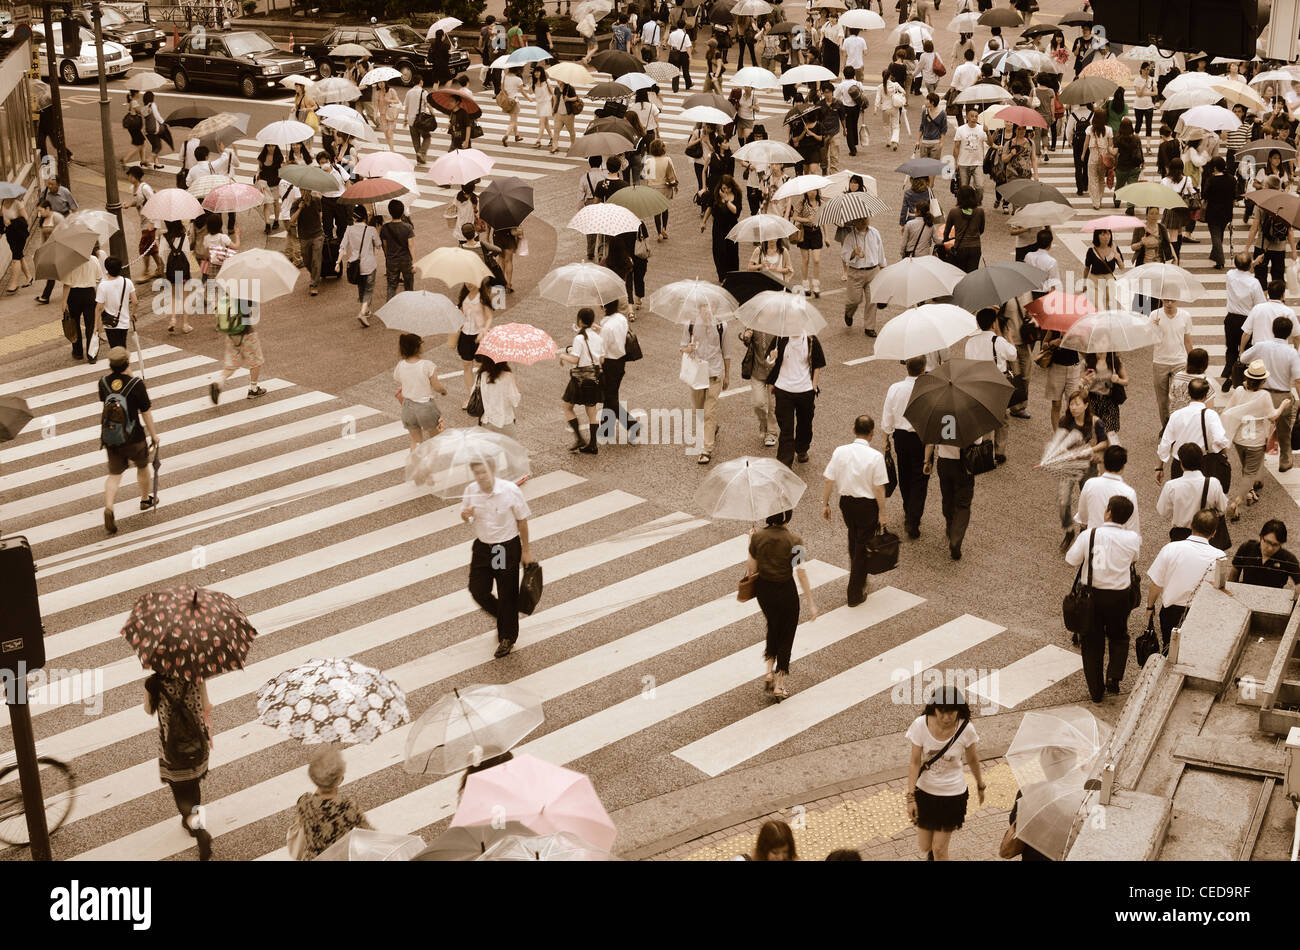 Pedestrians cross at Shibuya Crossing in Tokyo, Japan, the world's busiest crossing. - Stock Image